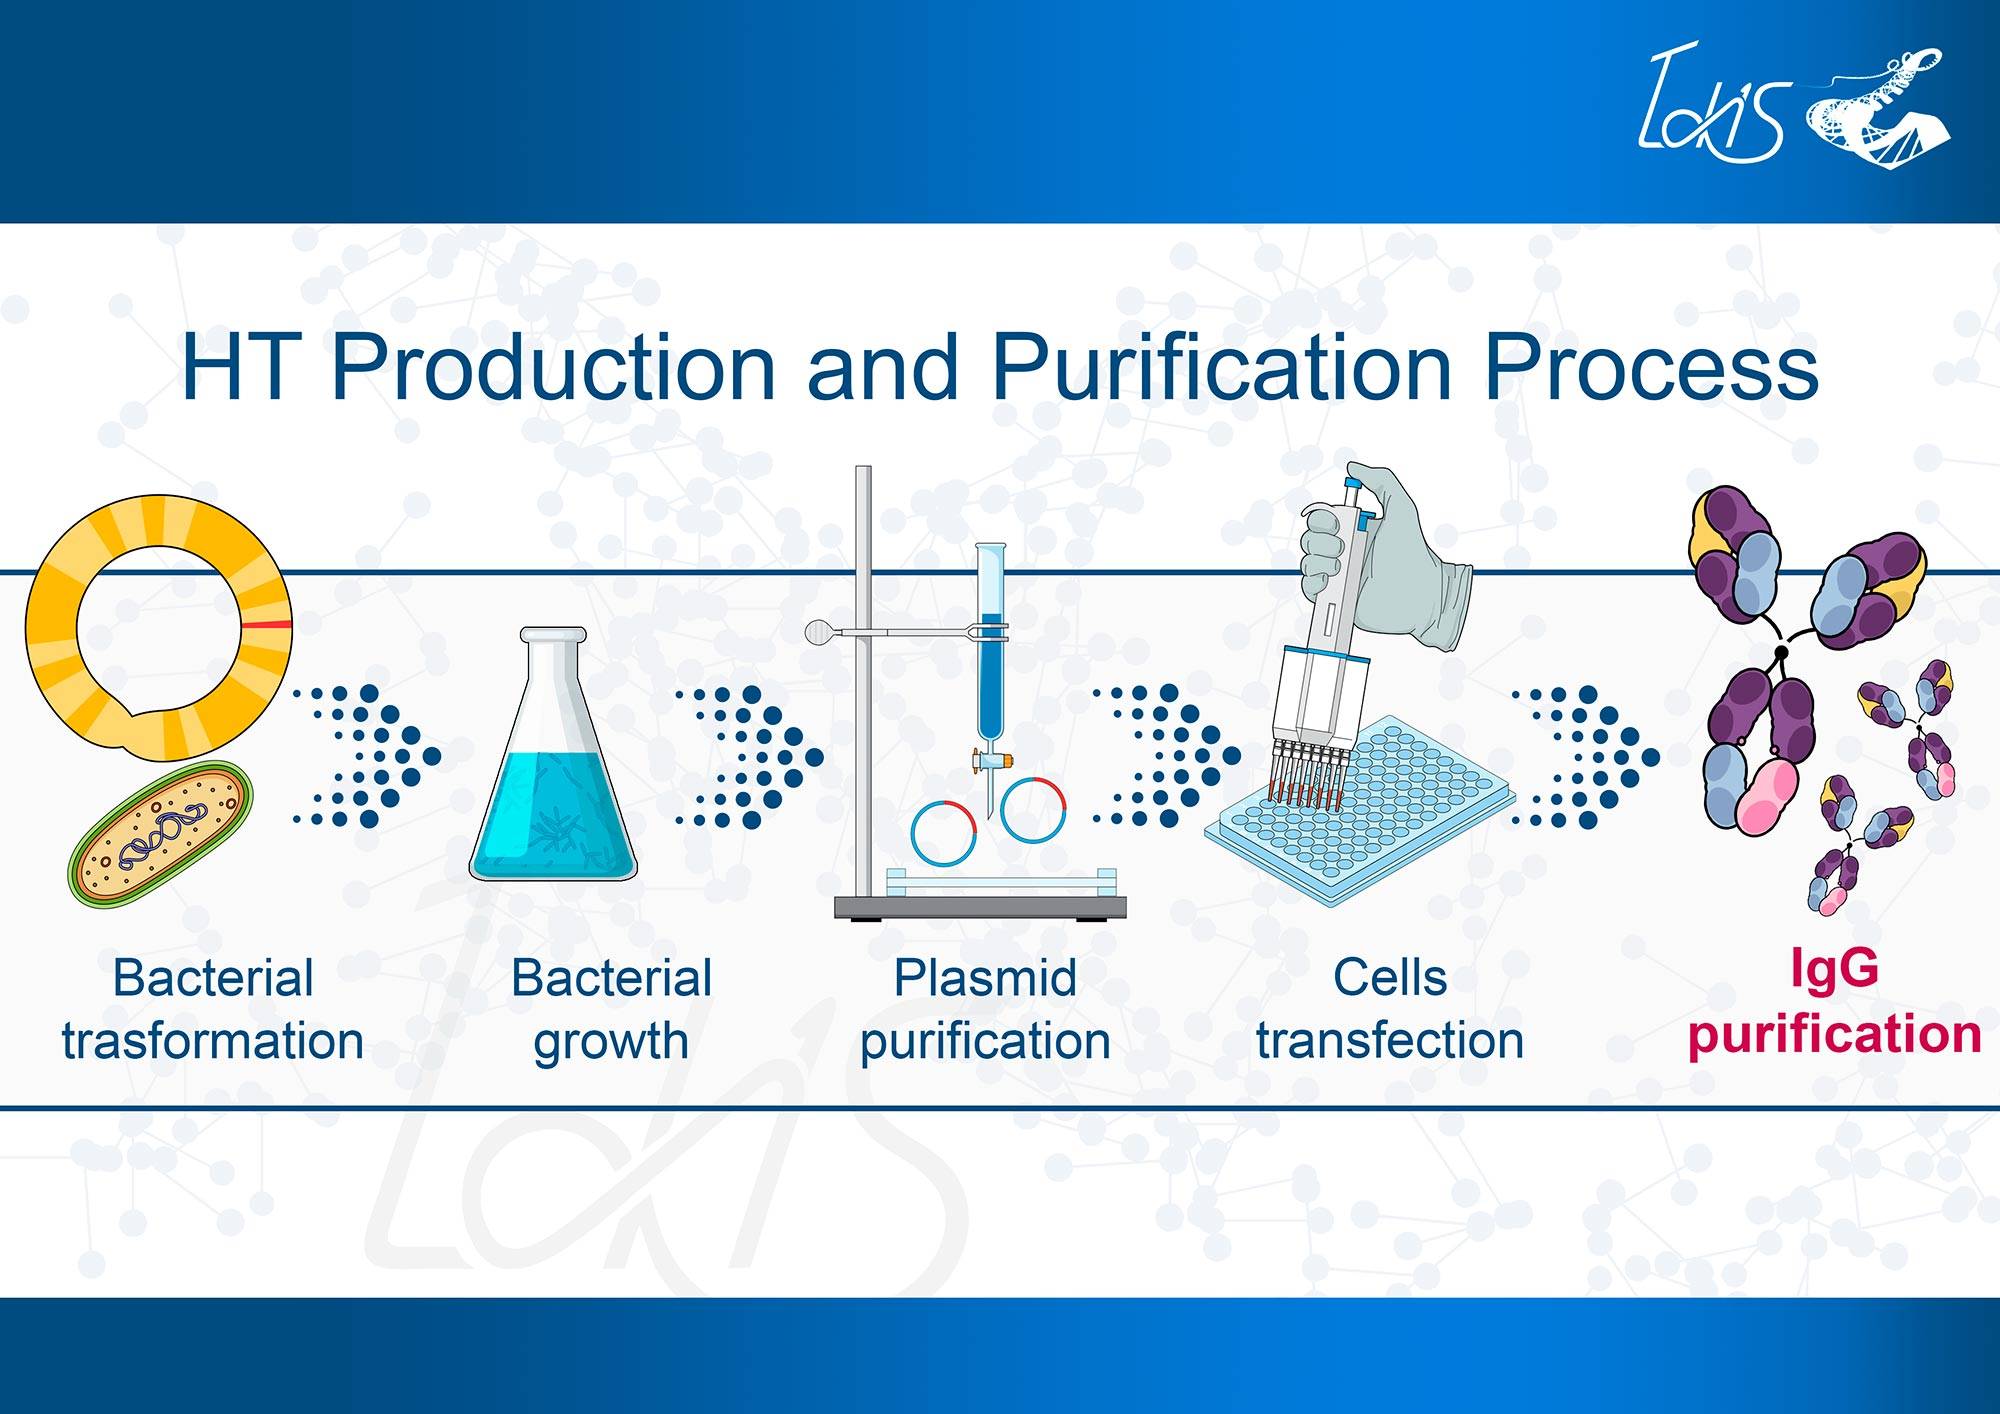 HT Production and Purification Process